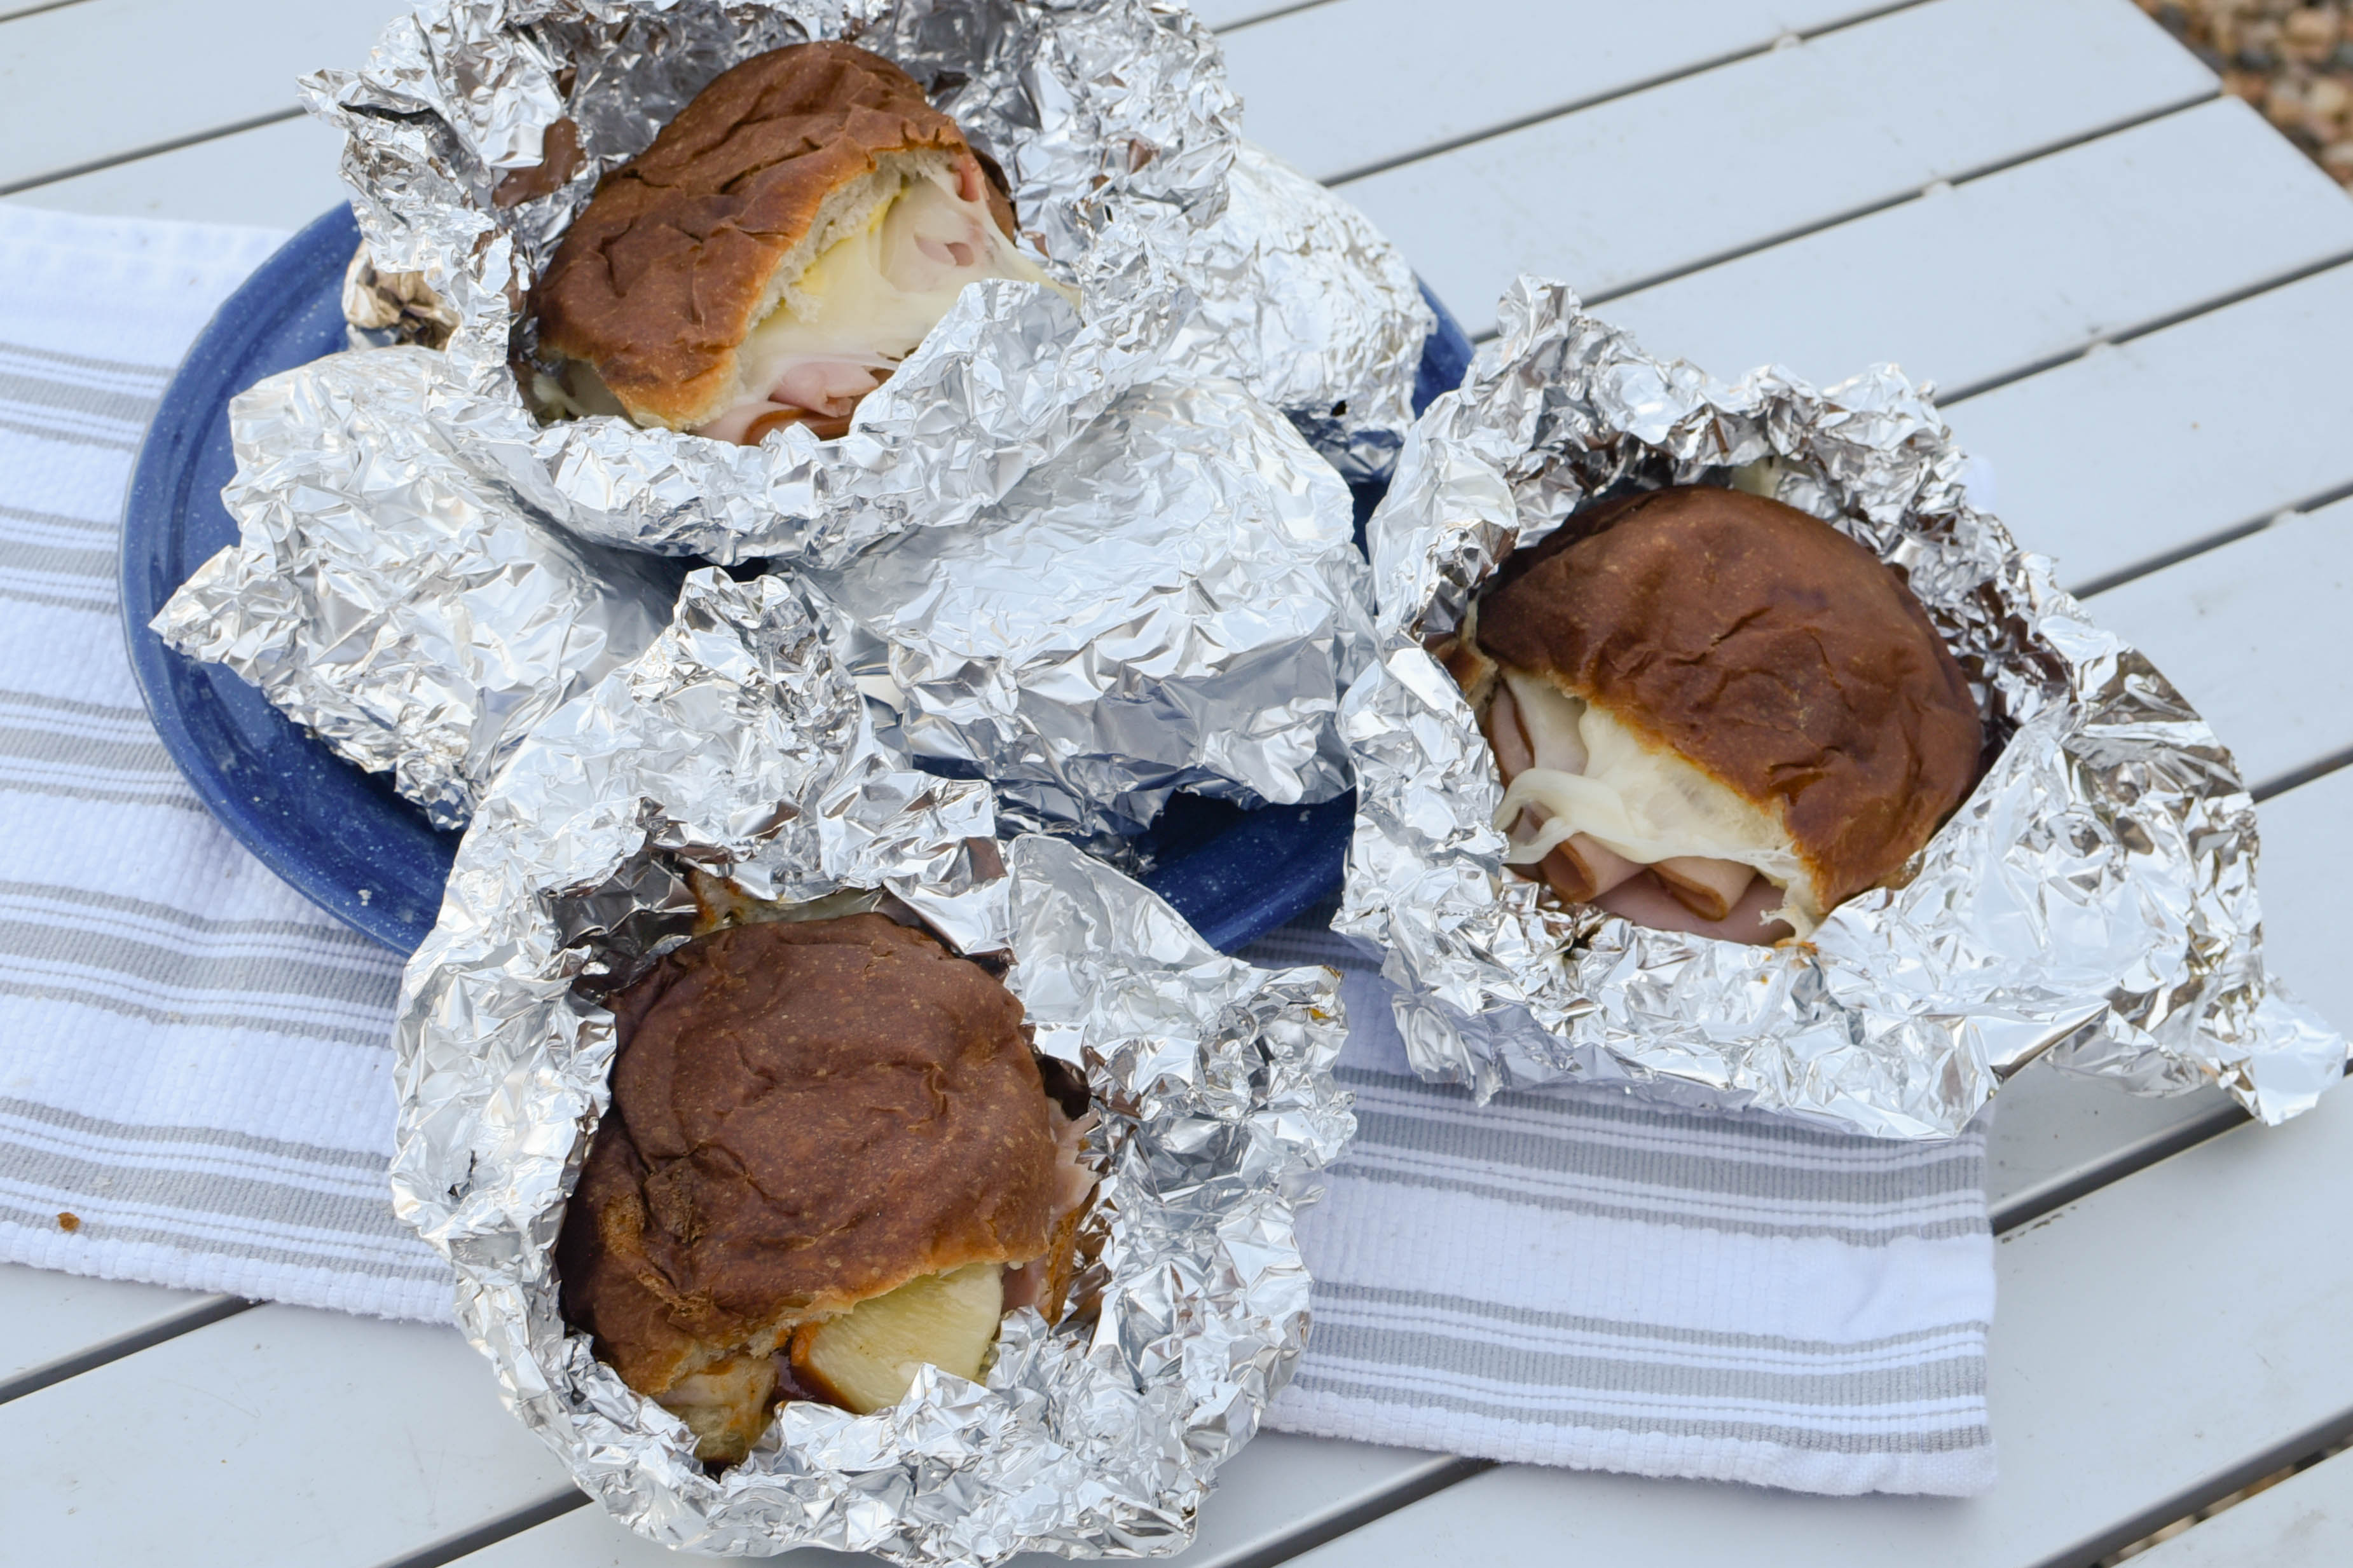 Three ham sandwiches with gooey cheese wrapped in foil.